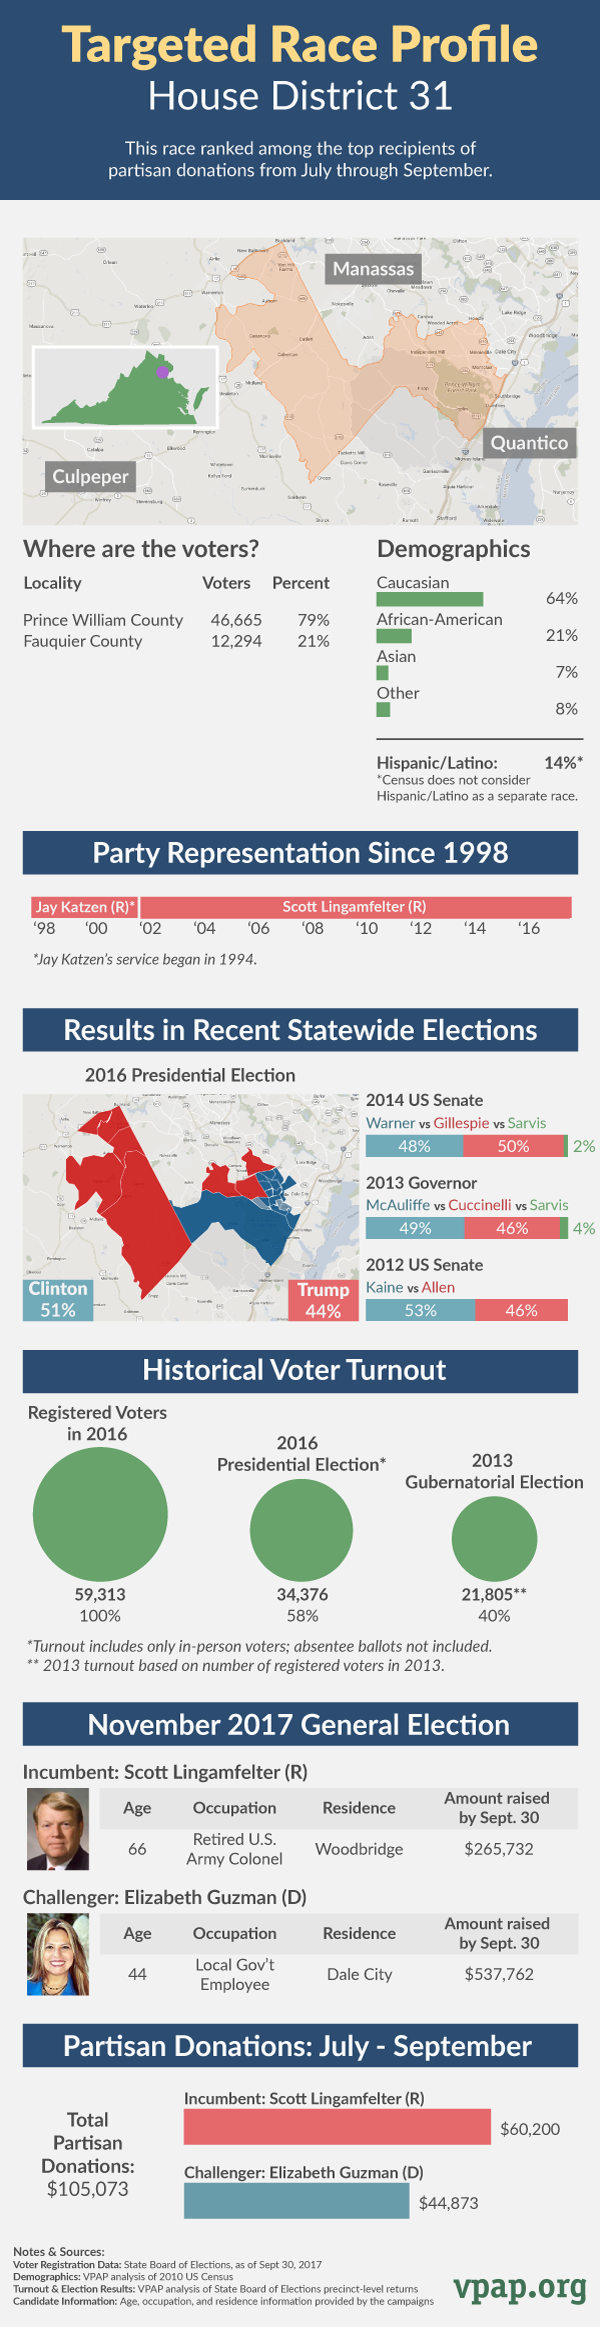 Targeted Race Profile: House District 31